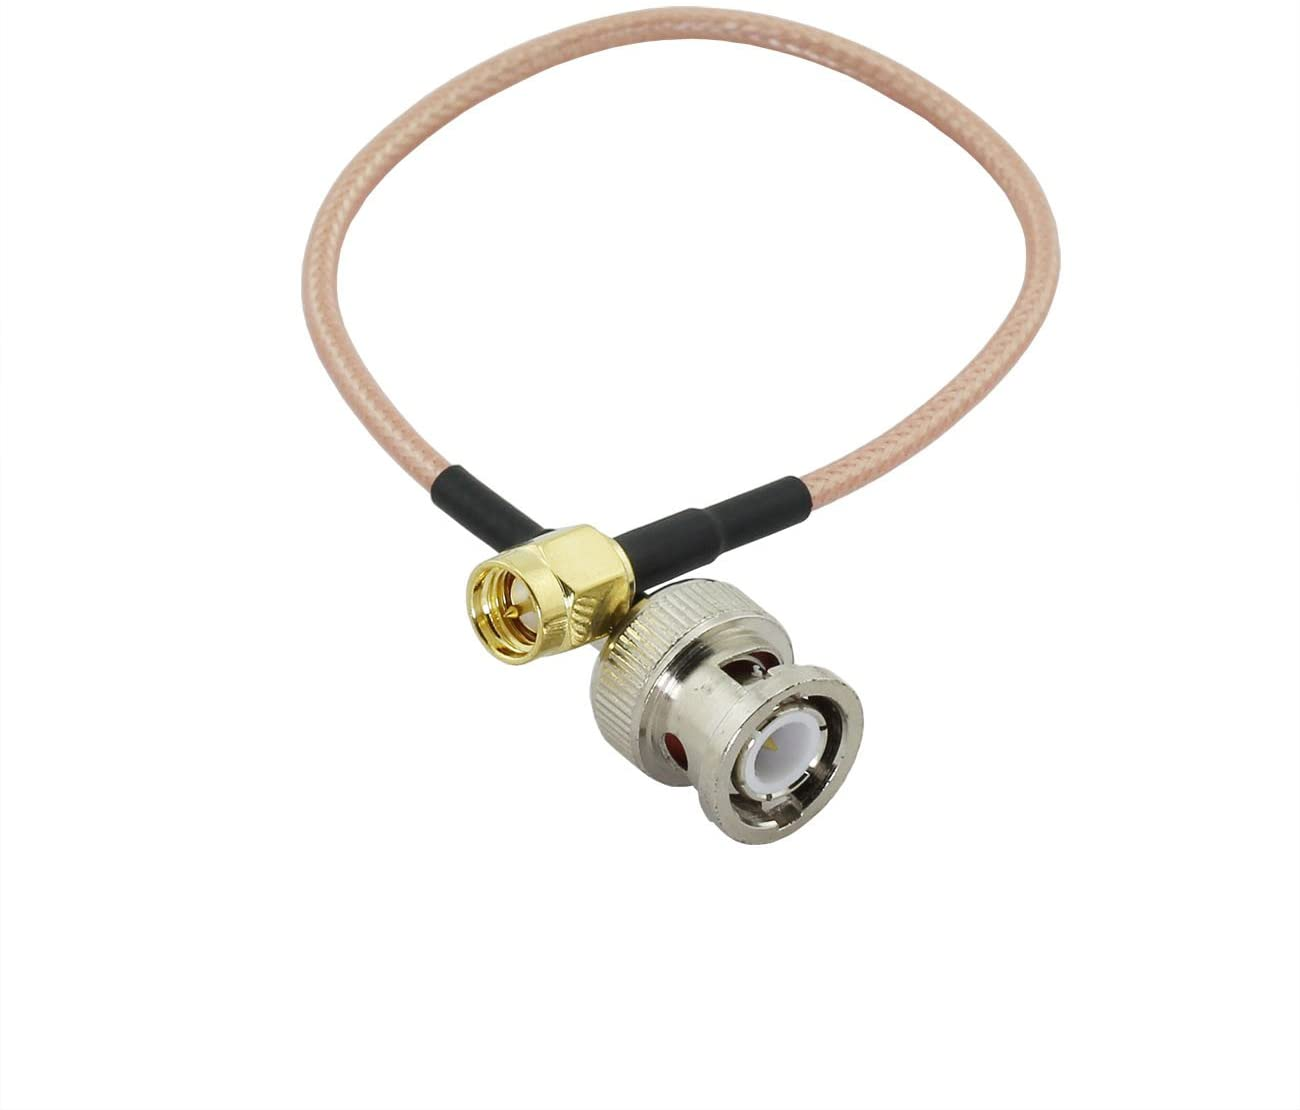 Maxmoral 1PCS SMA-BNC RG316 Coax Cable BNC Male Plug to SMA Male Jack RF Coaxial Connector Jumper Pigtail Extender Cable 20cm